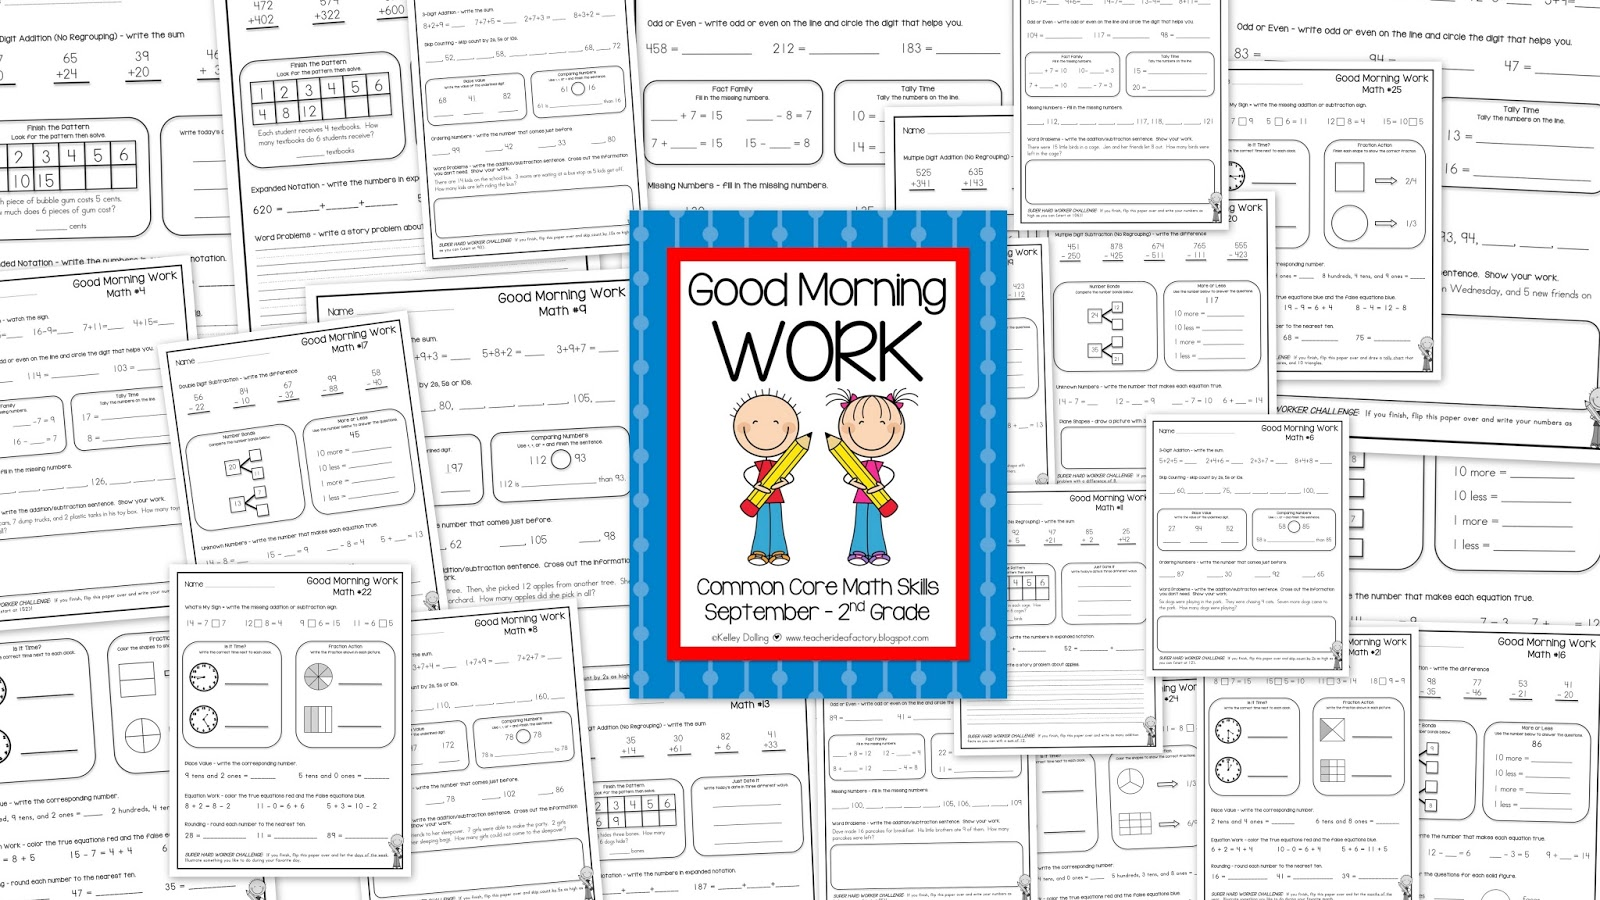 2ND GRADE MORNING WORK FOR SEPTEMBER + FREEBIE - Teacher Idea Factory